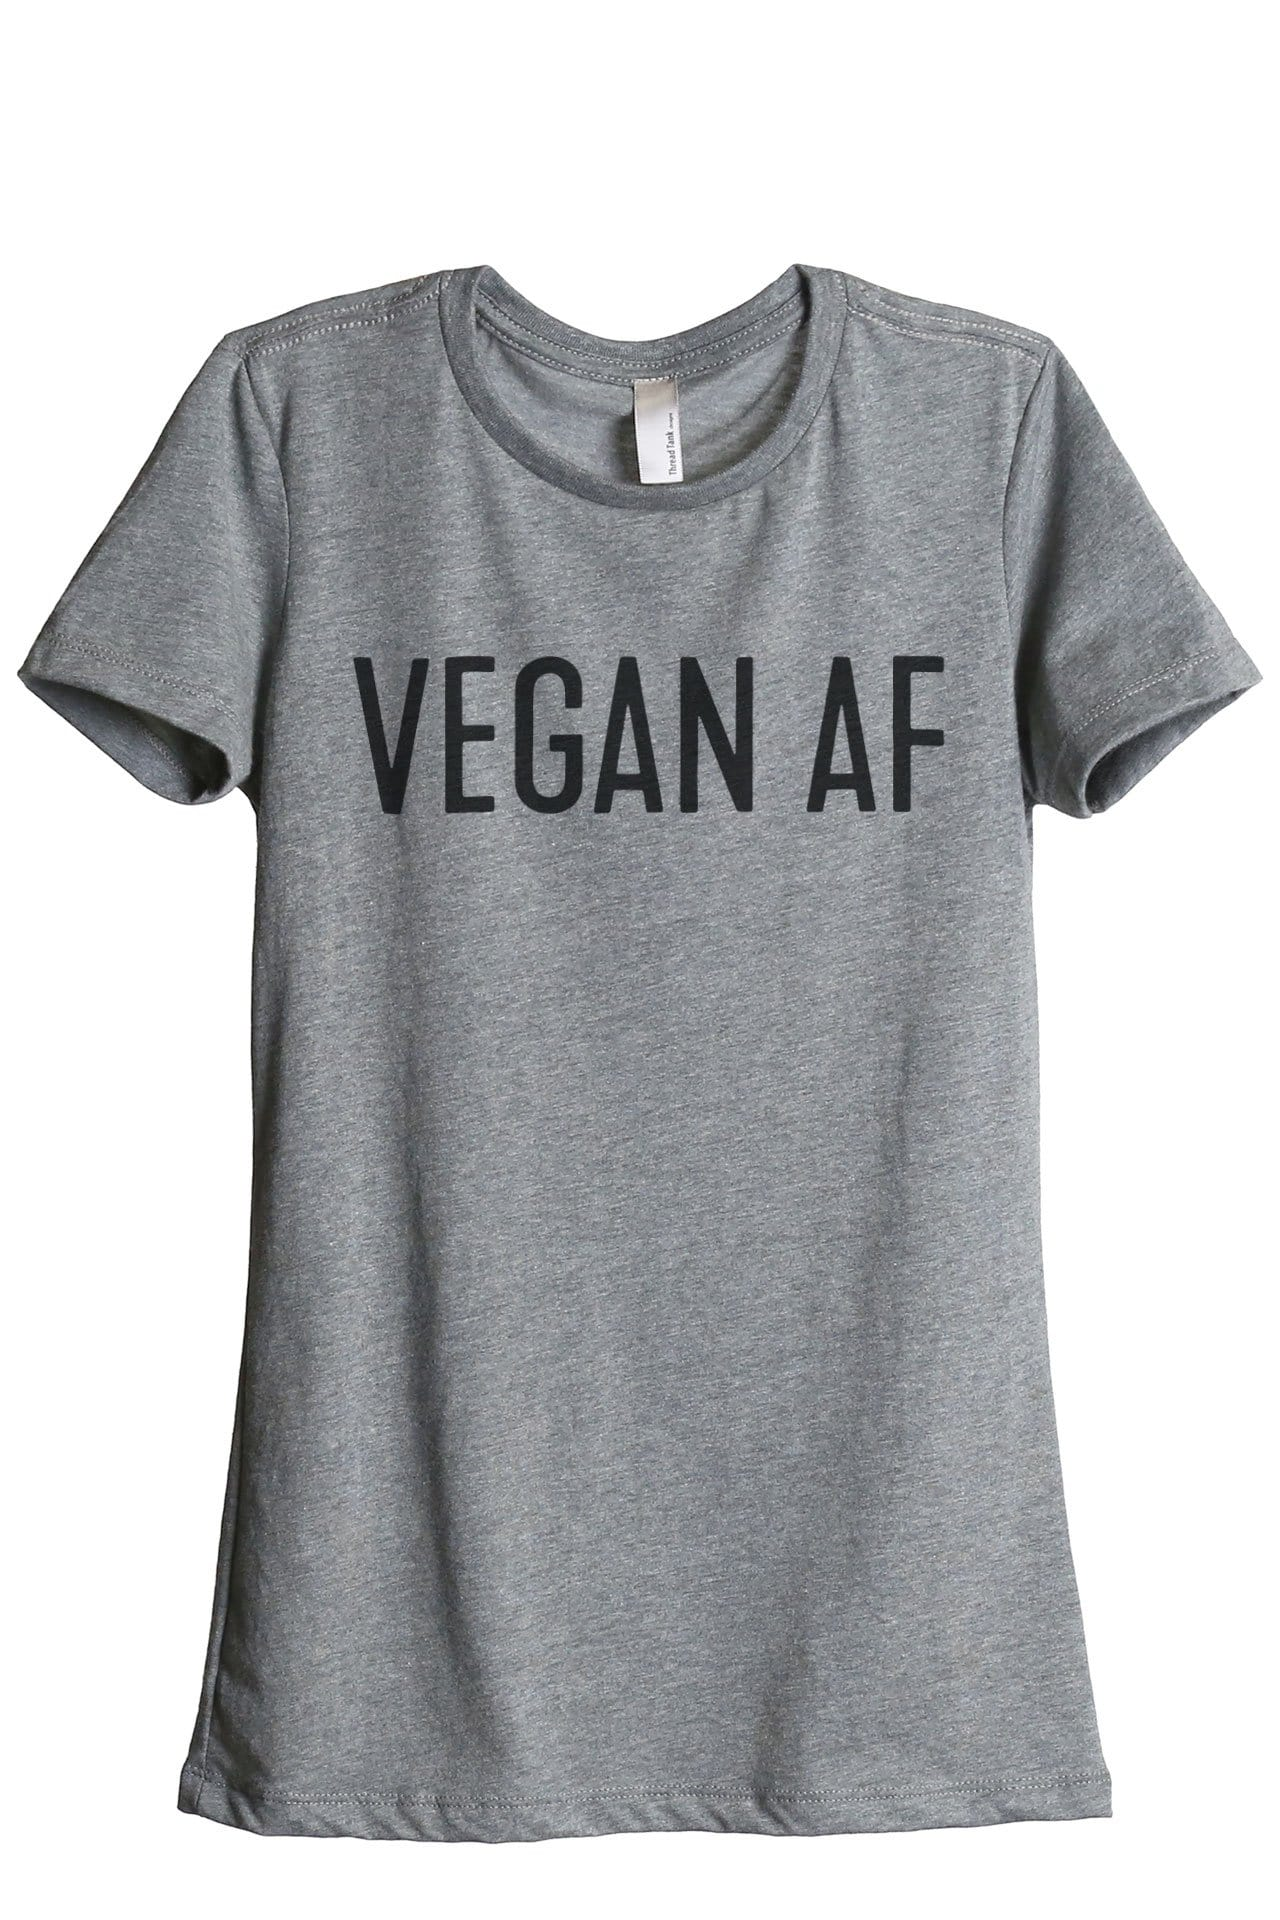 Vegan AF Women Heather Grey Relaxed Crew T-Shirt Tee Top